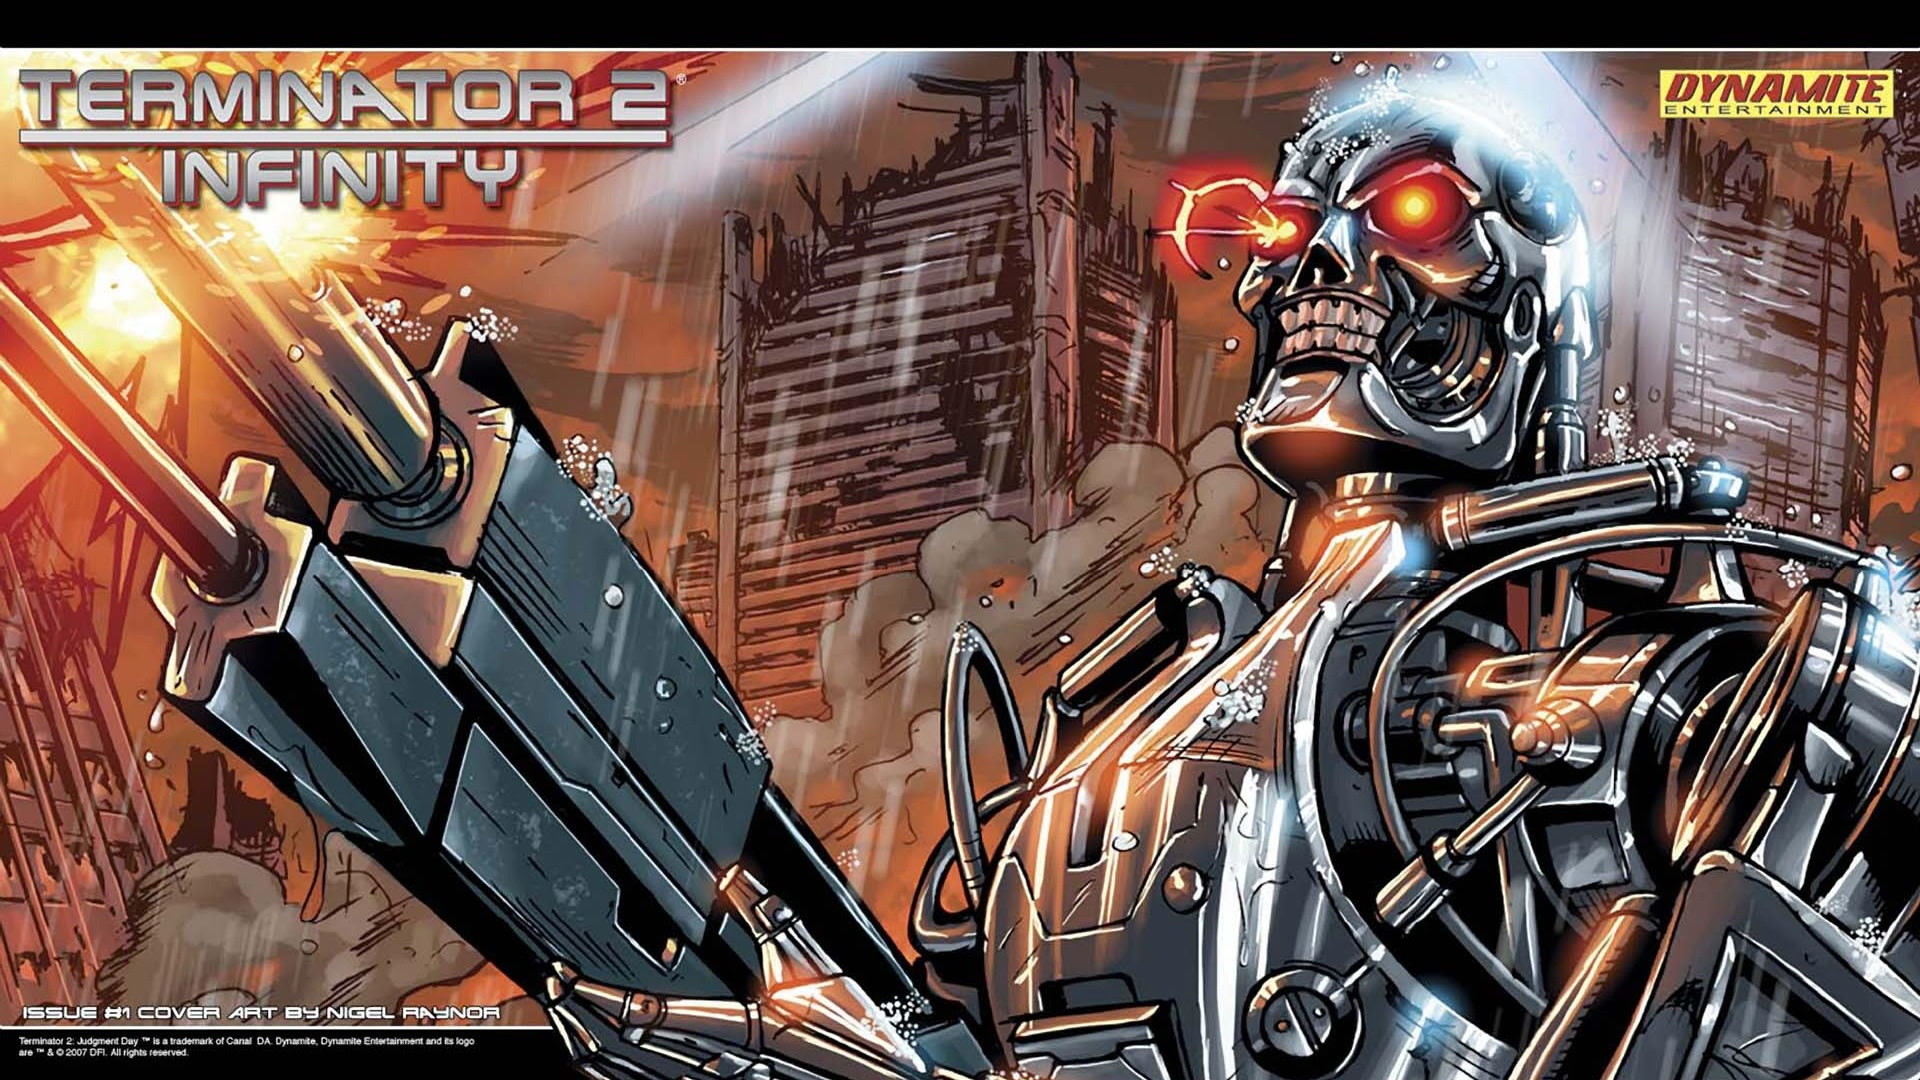 Amazing Terminator 5 Infinity Pictures & Backgrounds